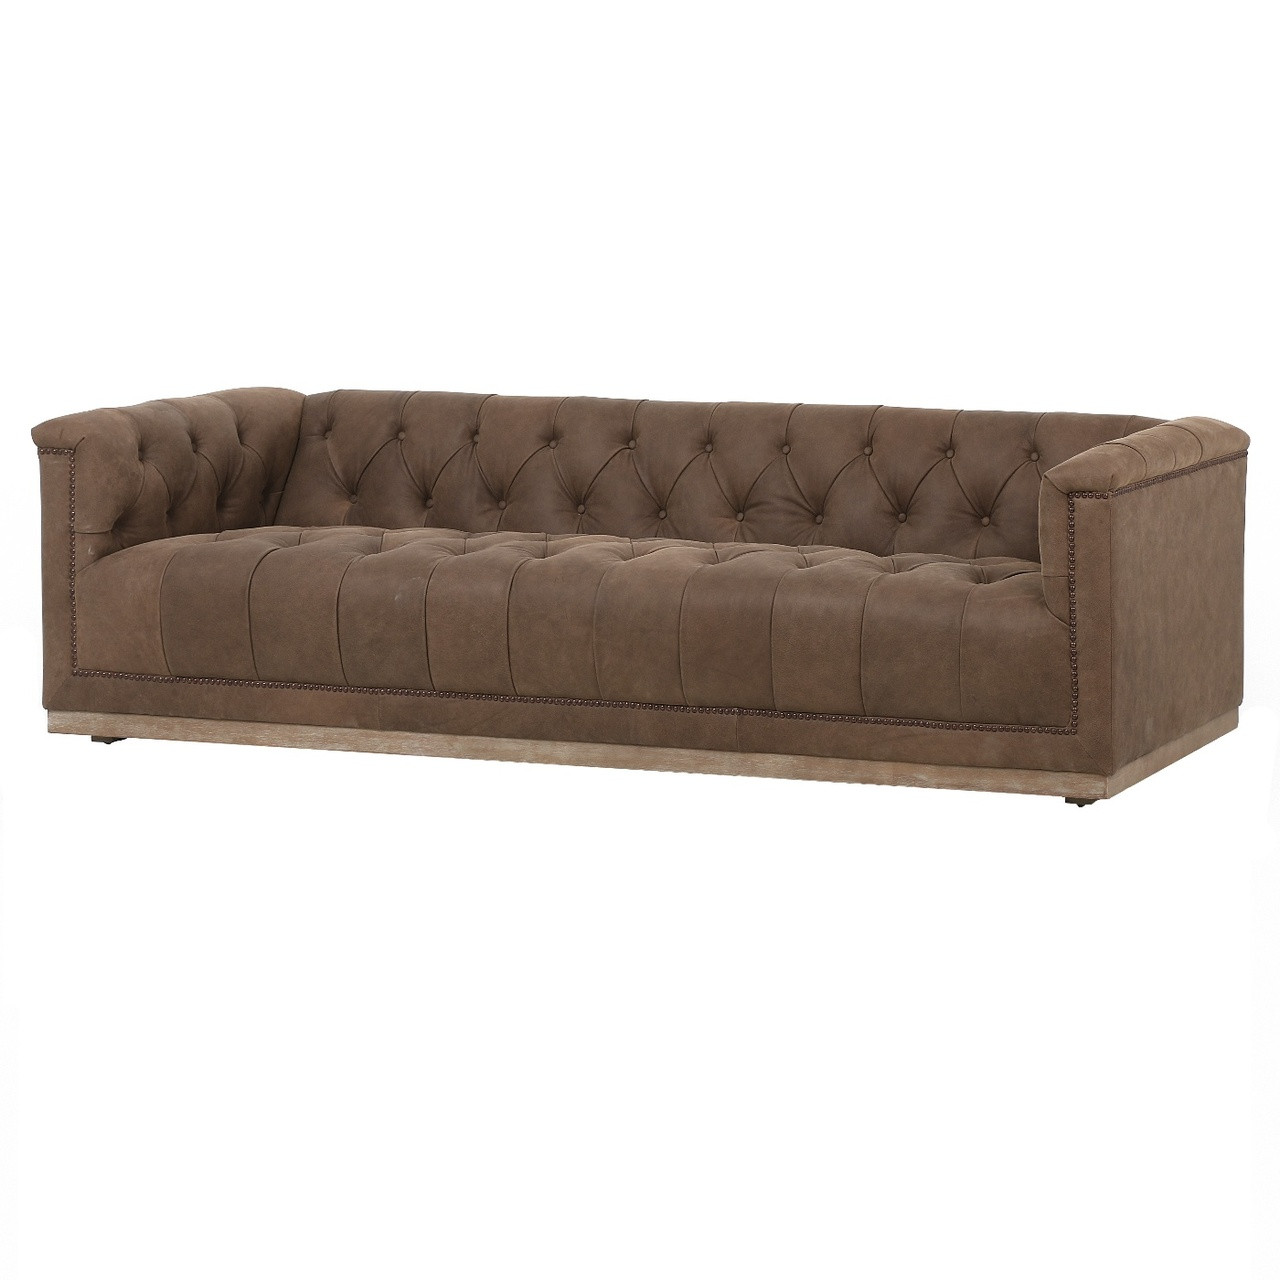 Maxx Umber Brown Leather Modern Tufted Sofa 95 | Zin Home - Fourhands